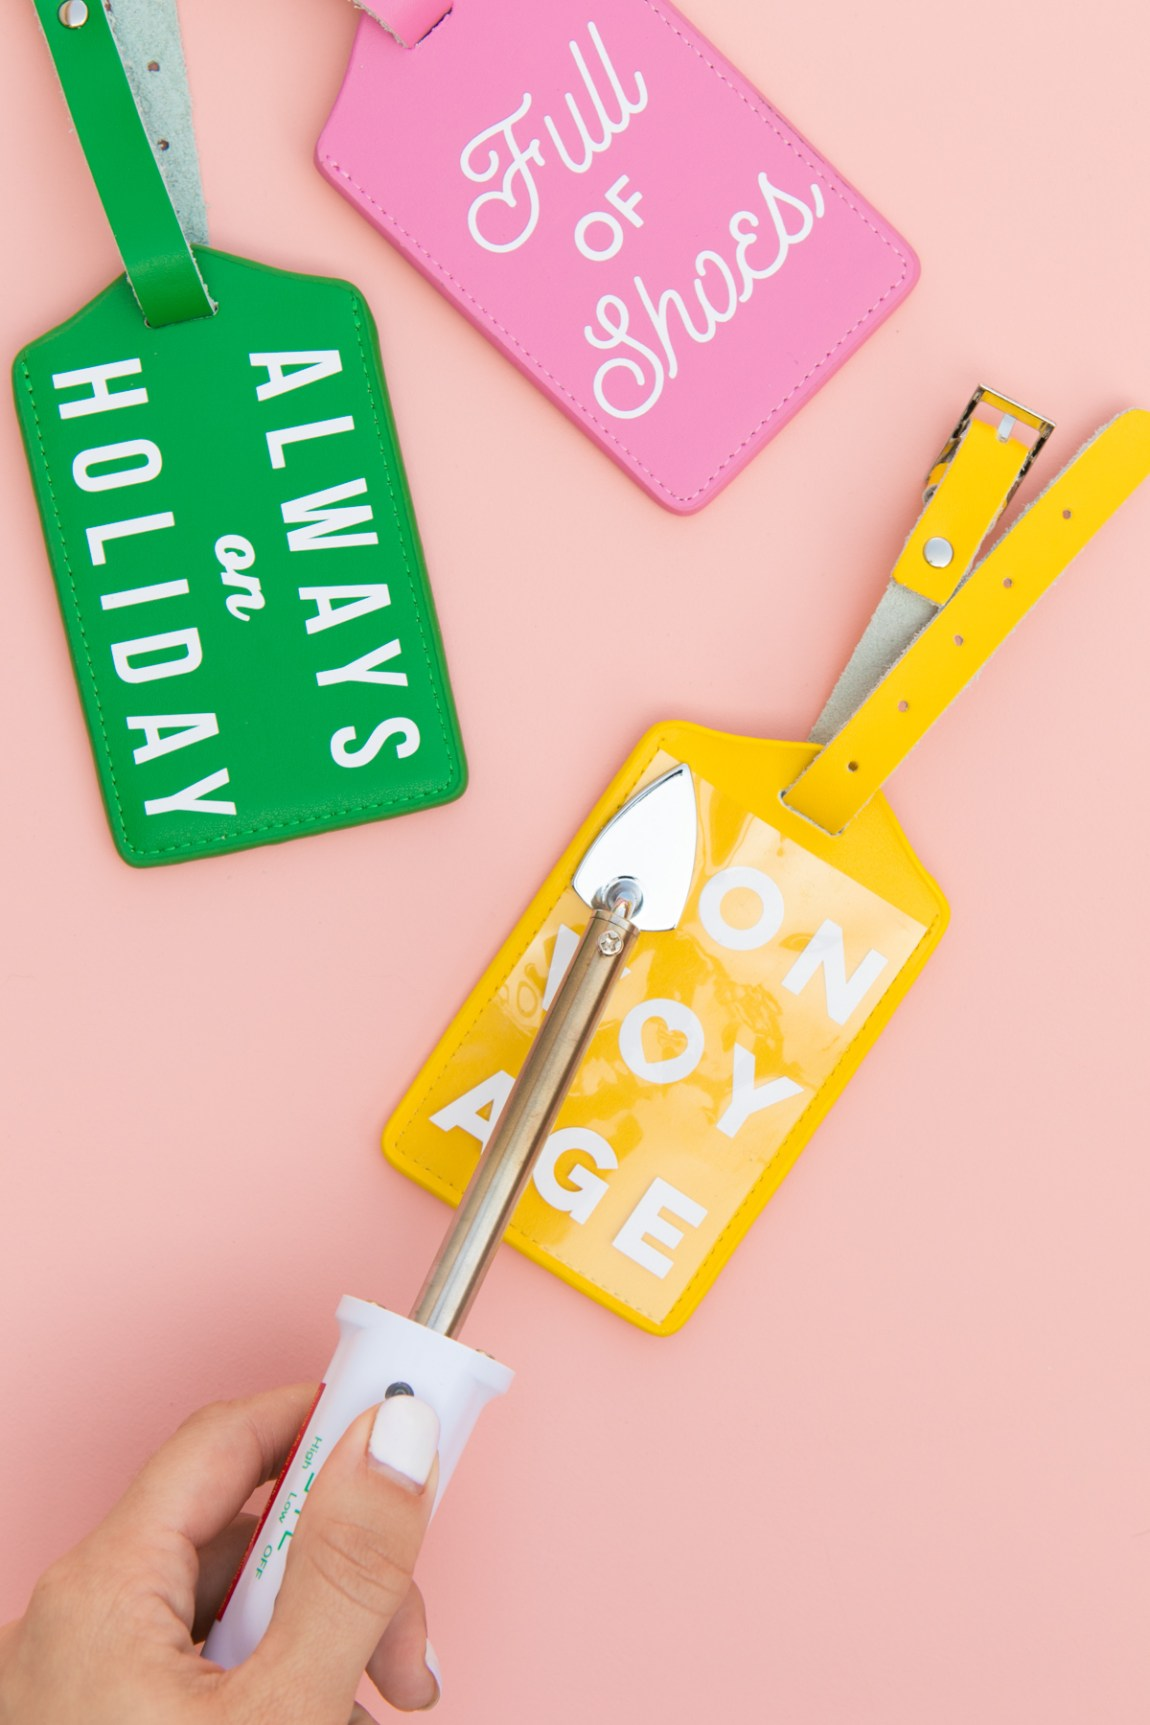 Use a mini iron to apply heat transfer vinyl to leather objects such as luggage tags.